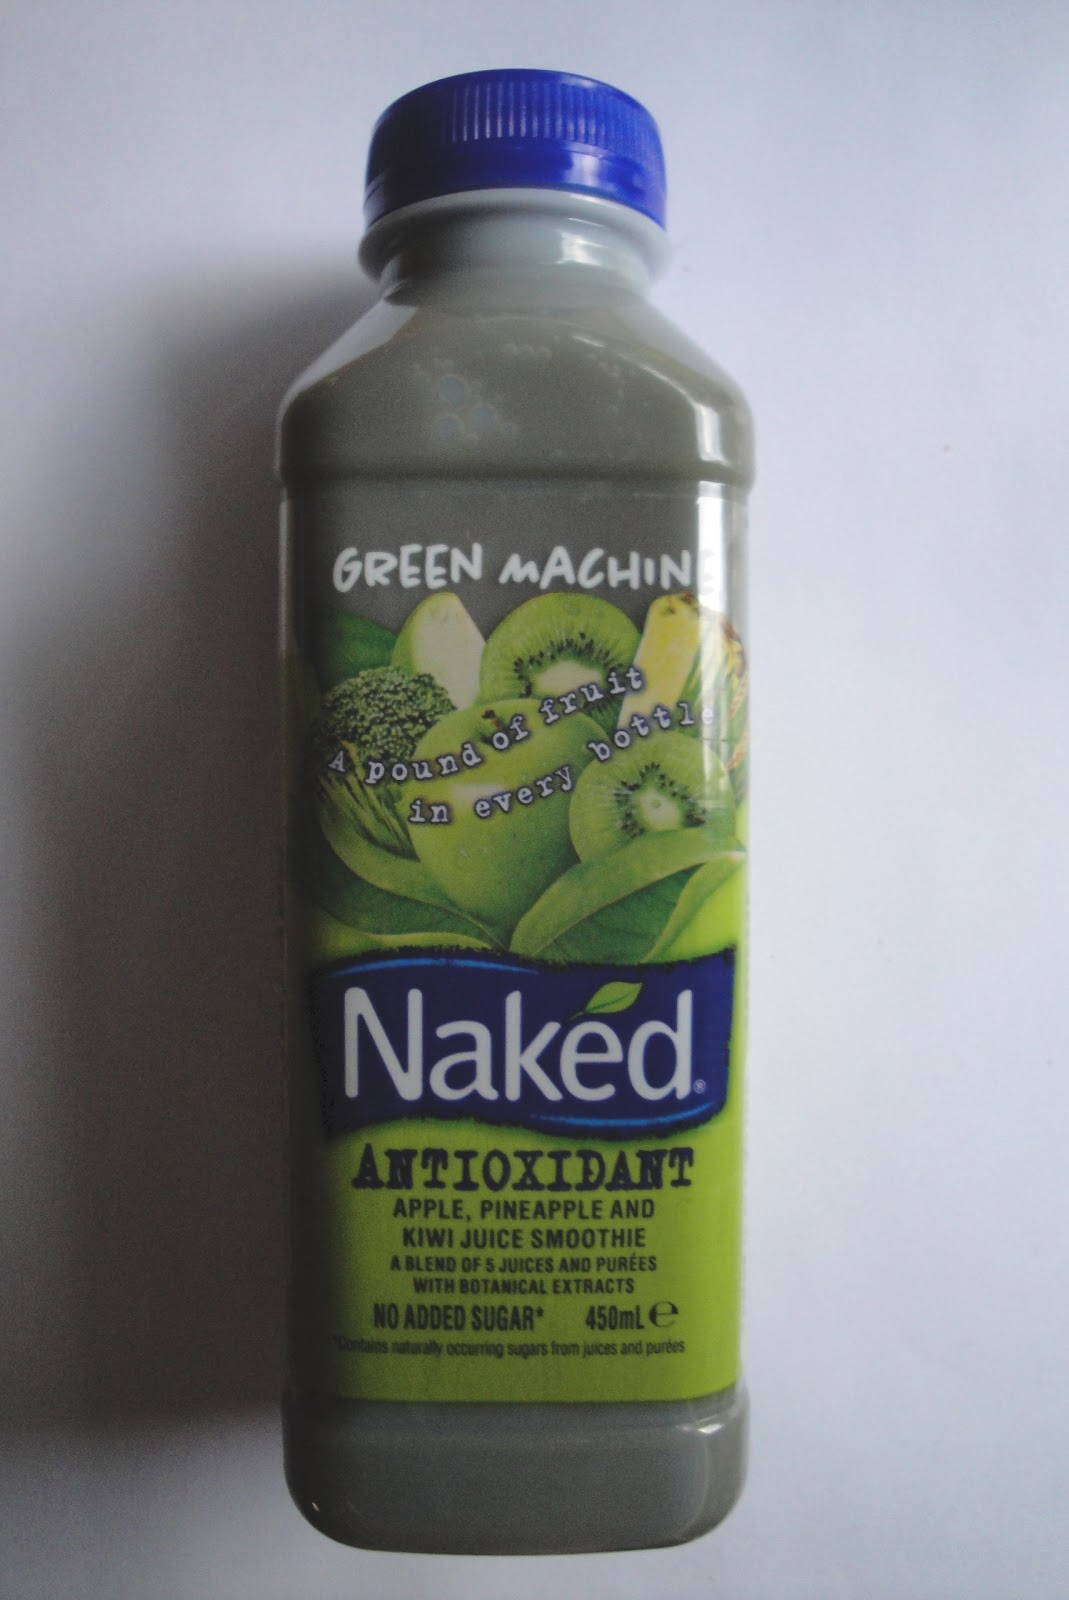 free and me green machine smoothie naked smoothie green machine ...